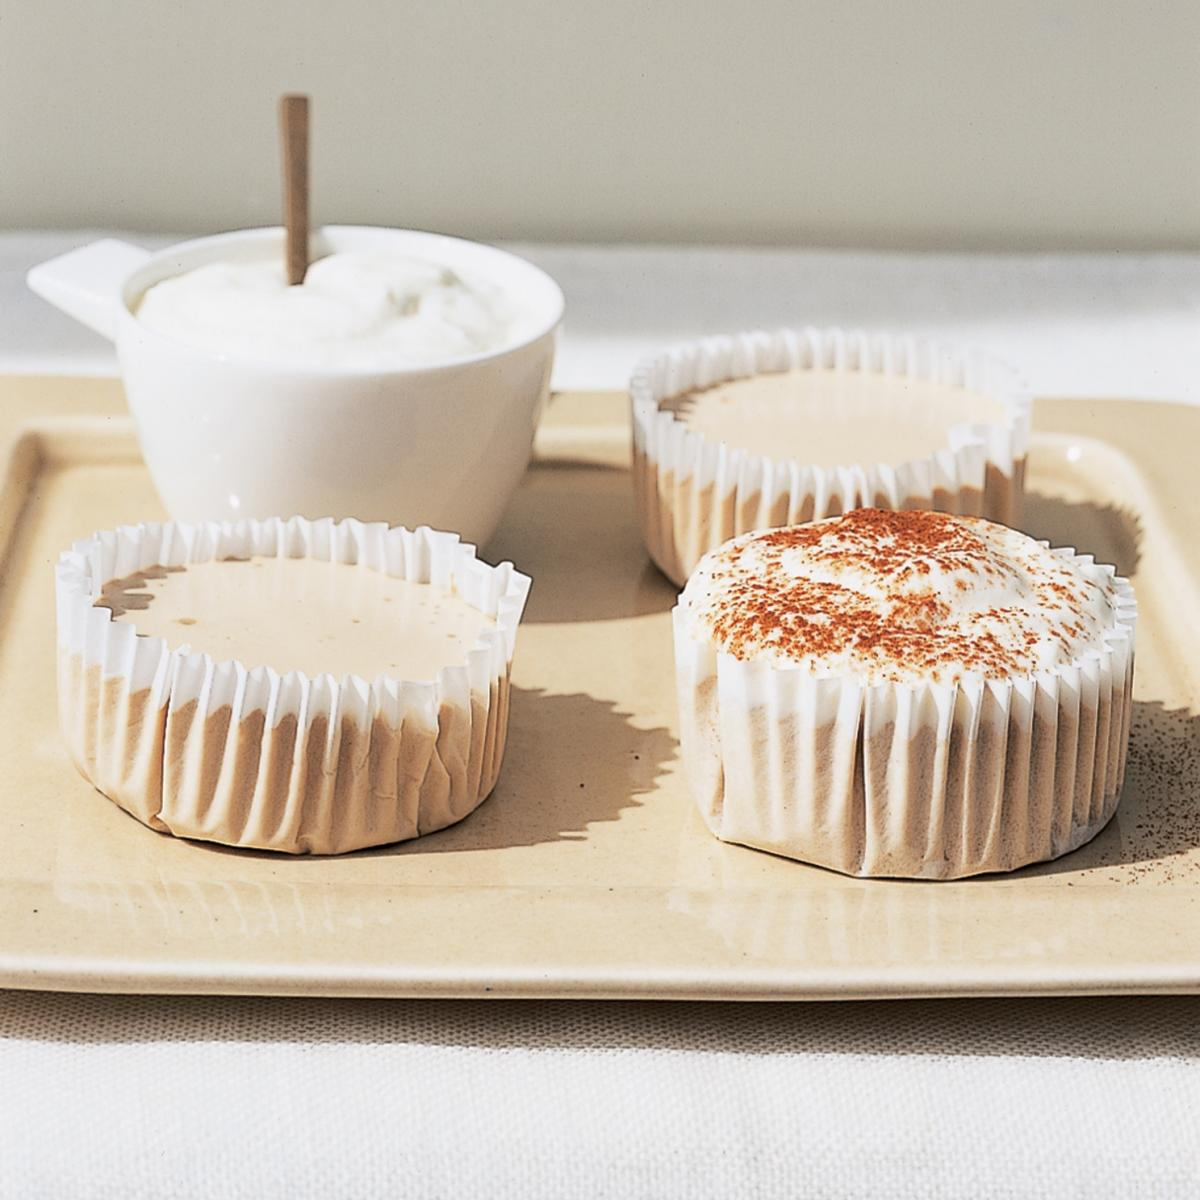 A picture of Delia's Cappuccino Cheesecakes recipe